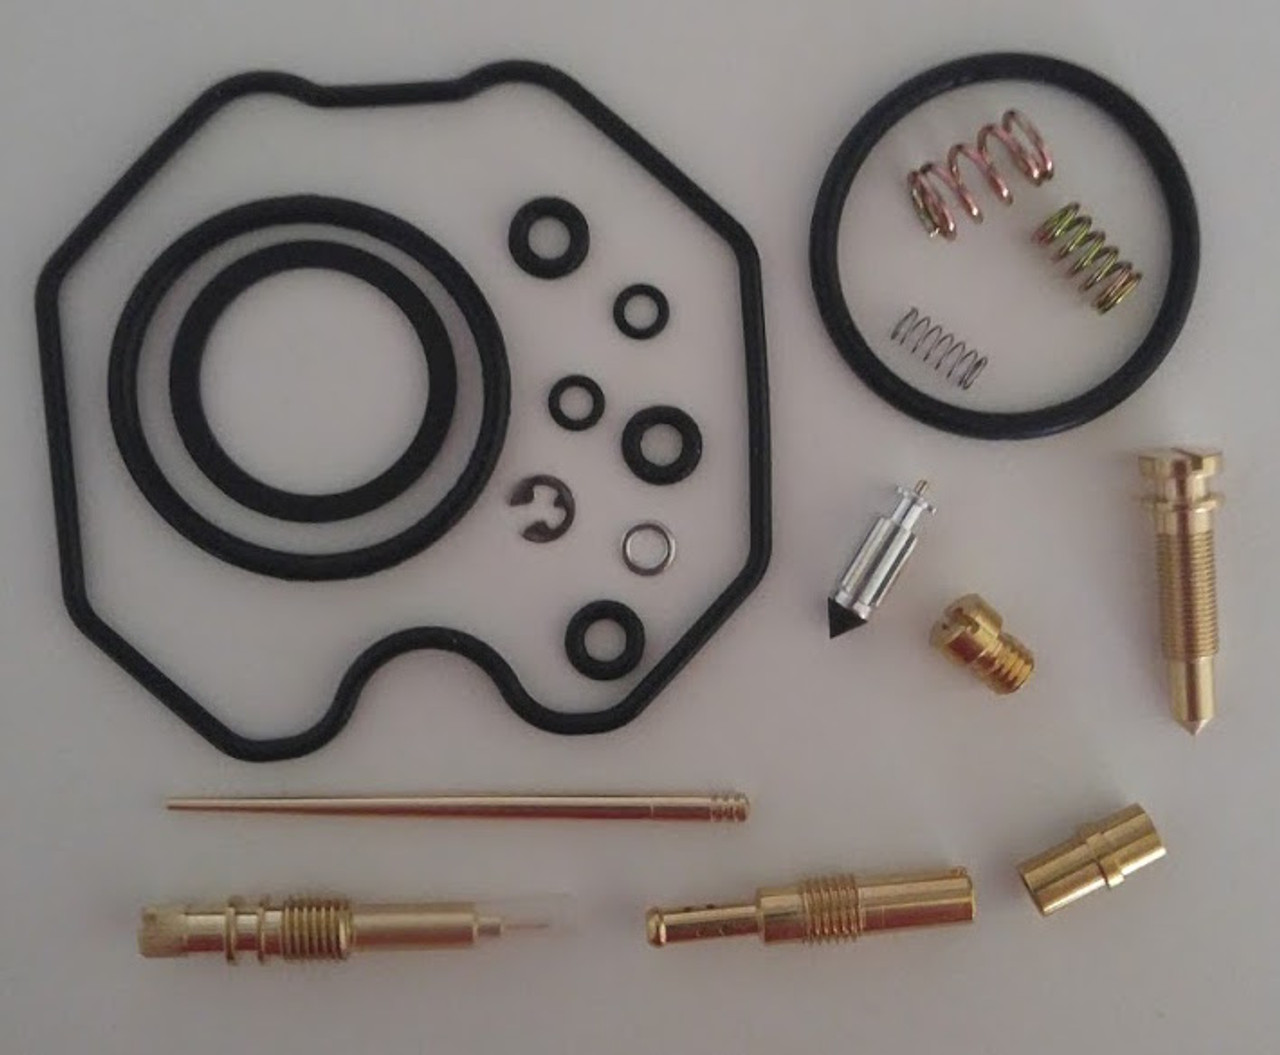 Carb Carburetor Spare Parts Rebuild Set For Honda TRX 250 EX 250 Recon 2001-2005